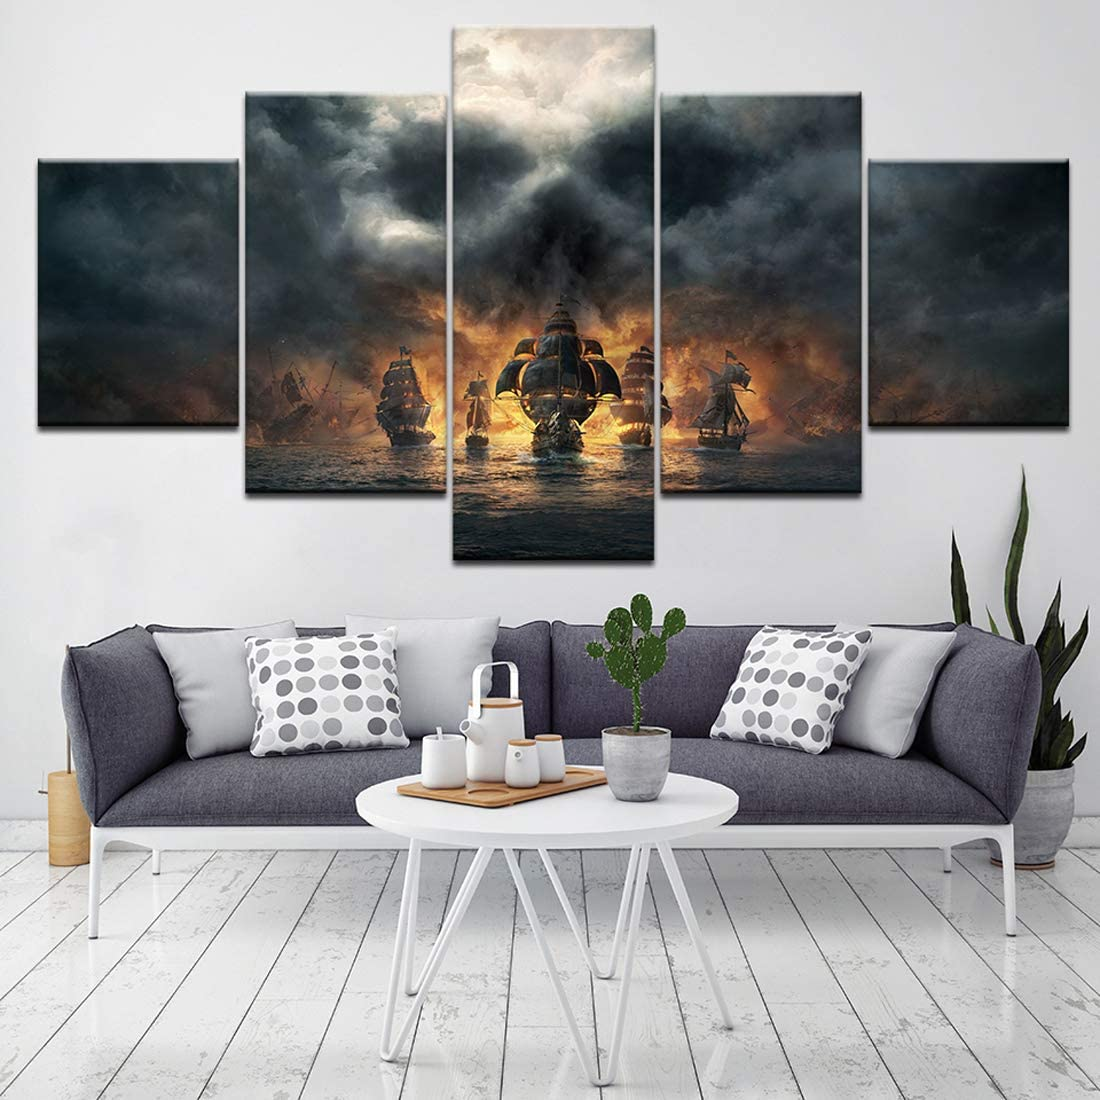 HSART Modern Wall Art 5 Pieces Canvas Painting Pirates of The Caribbean Movie Modular Wallpapers Poster Print Pictures for Living Room,B,40x60x2+40x100x1+40x80x2